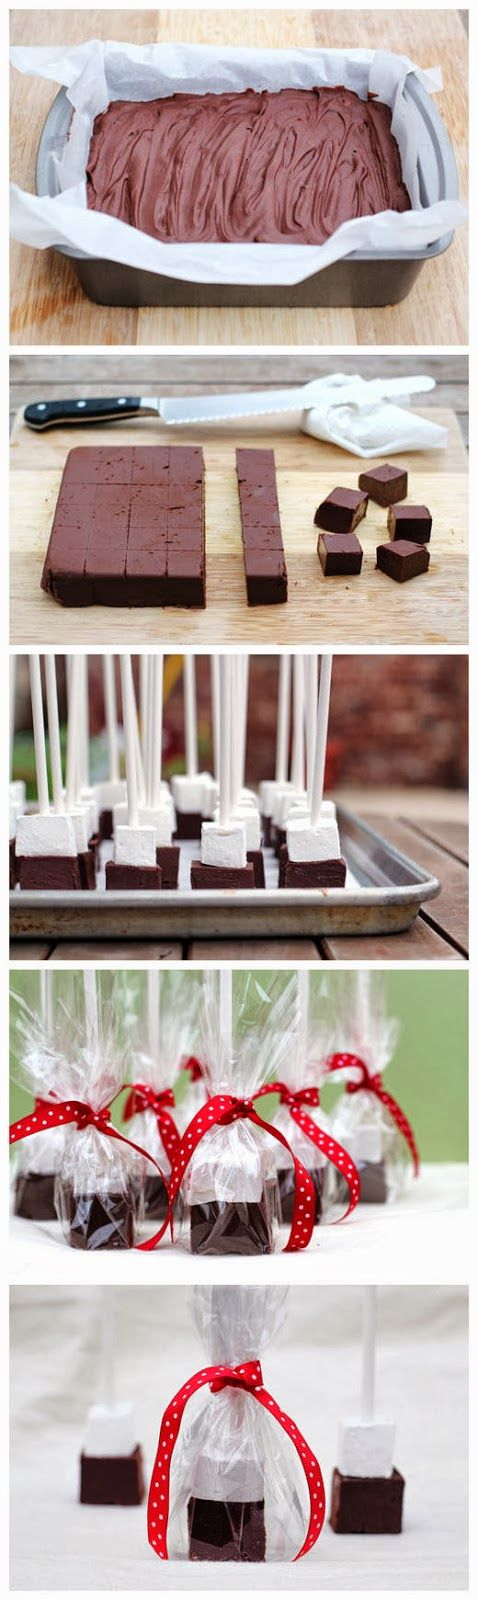 Swirl these blocks into a mug of hot milk and enjoy luscious hot chocolate. In need of a creamy chocolate fix? Nibble the chocolate blocks d...